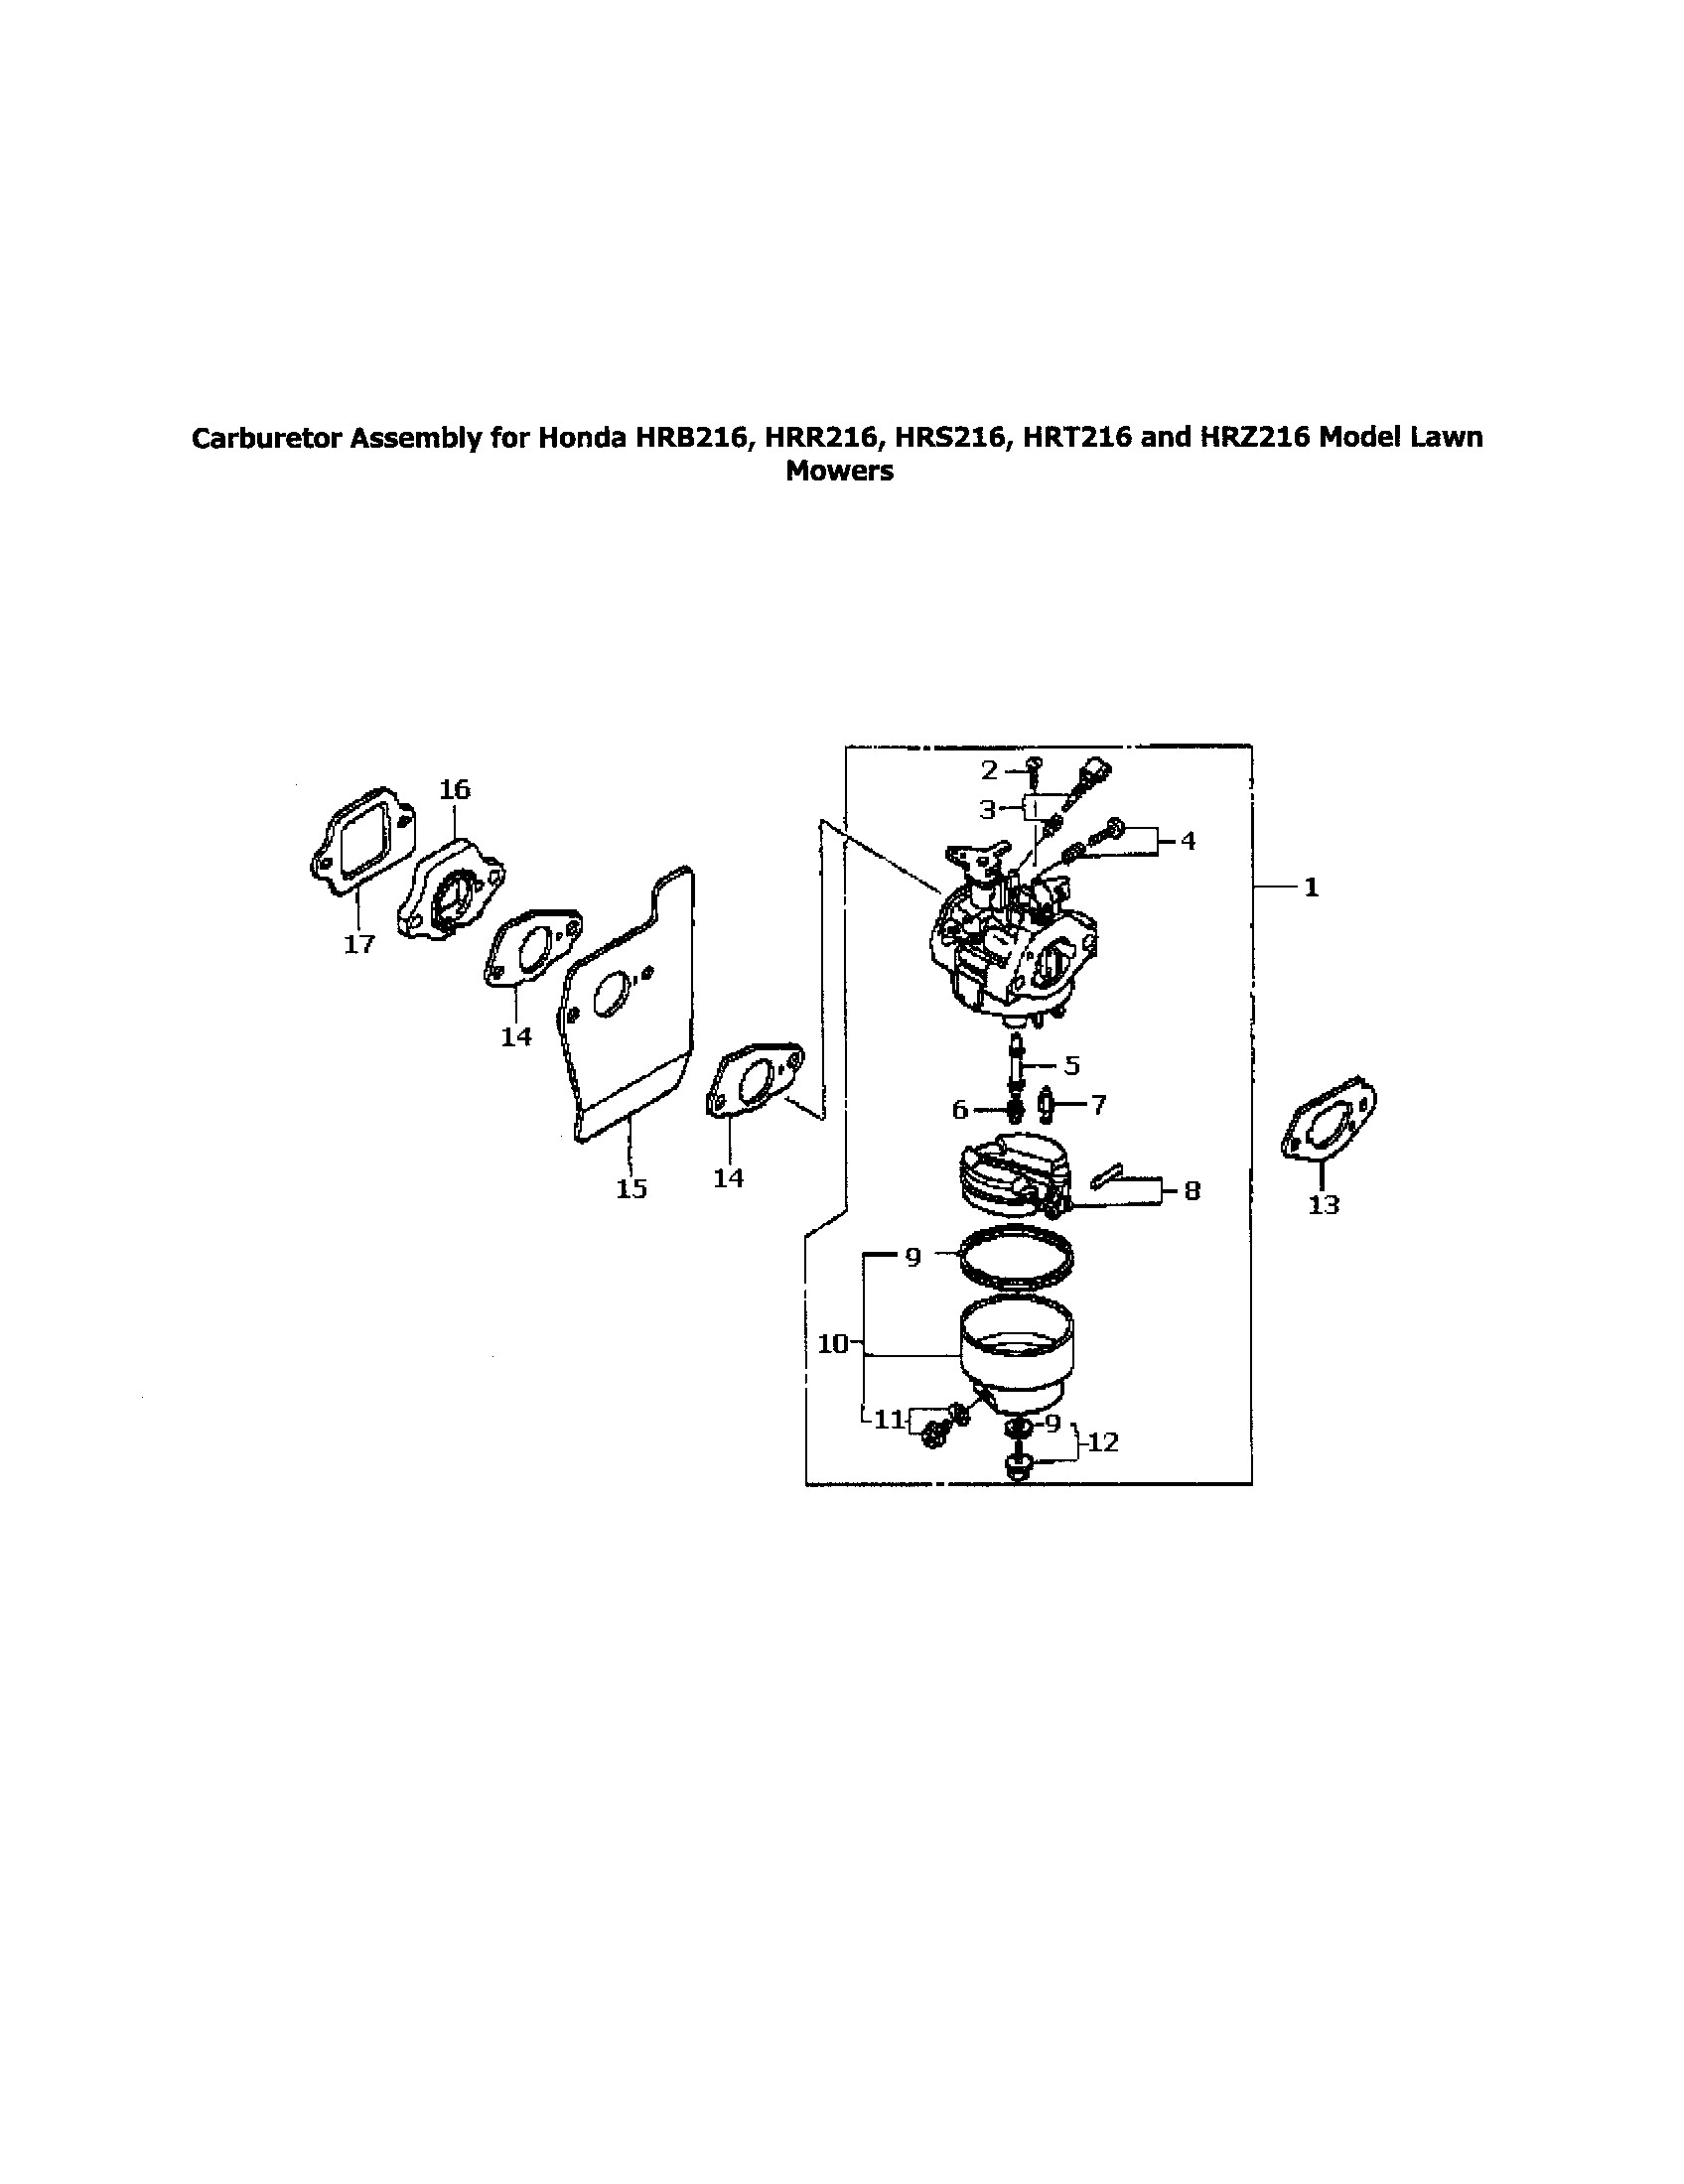 Honda Small Engine Carburetor Diagram Honda Small Engine Diagram Example Electrical Wiring Diagram • Of Honda Small Engine Carburetor Diagram Craftsman Riding Mower Electrical Diagram